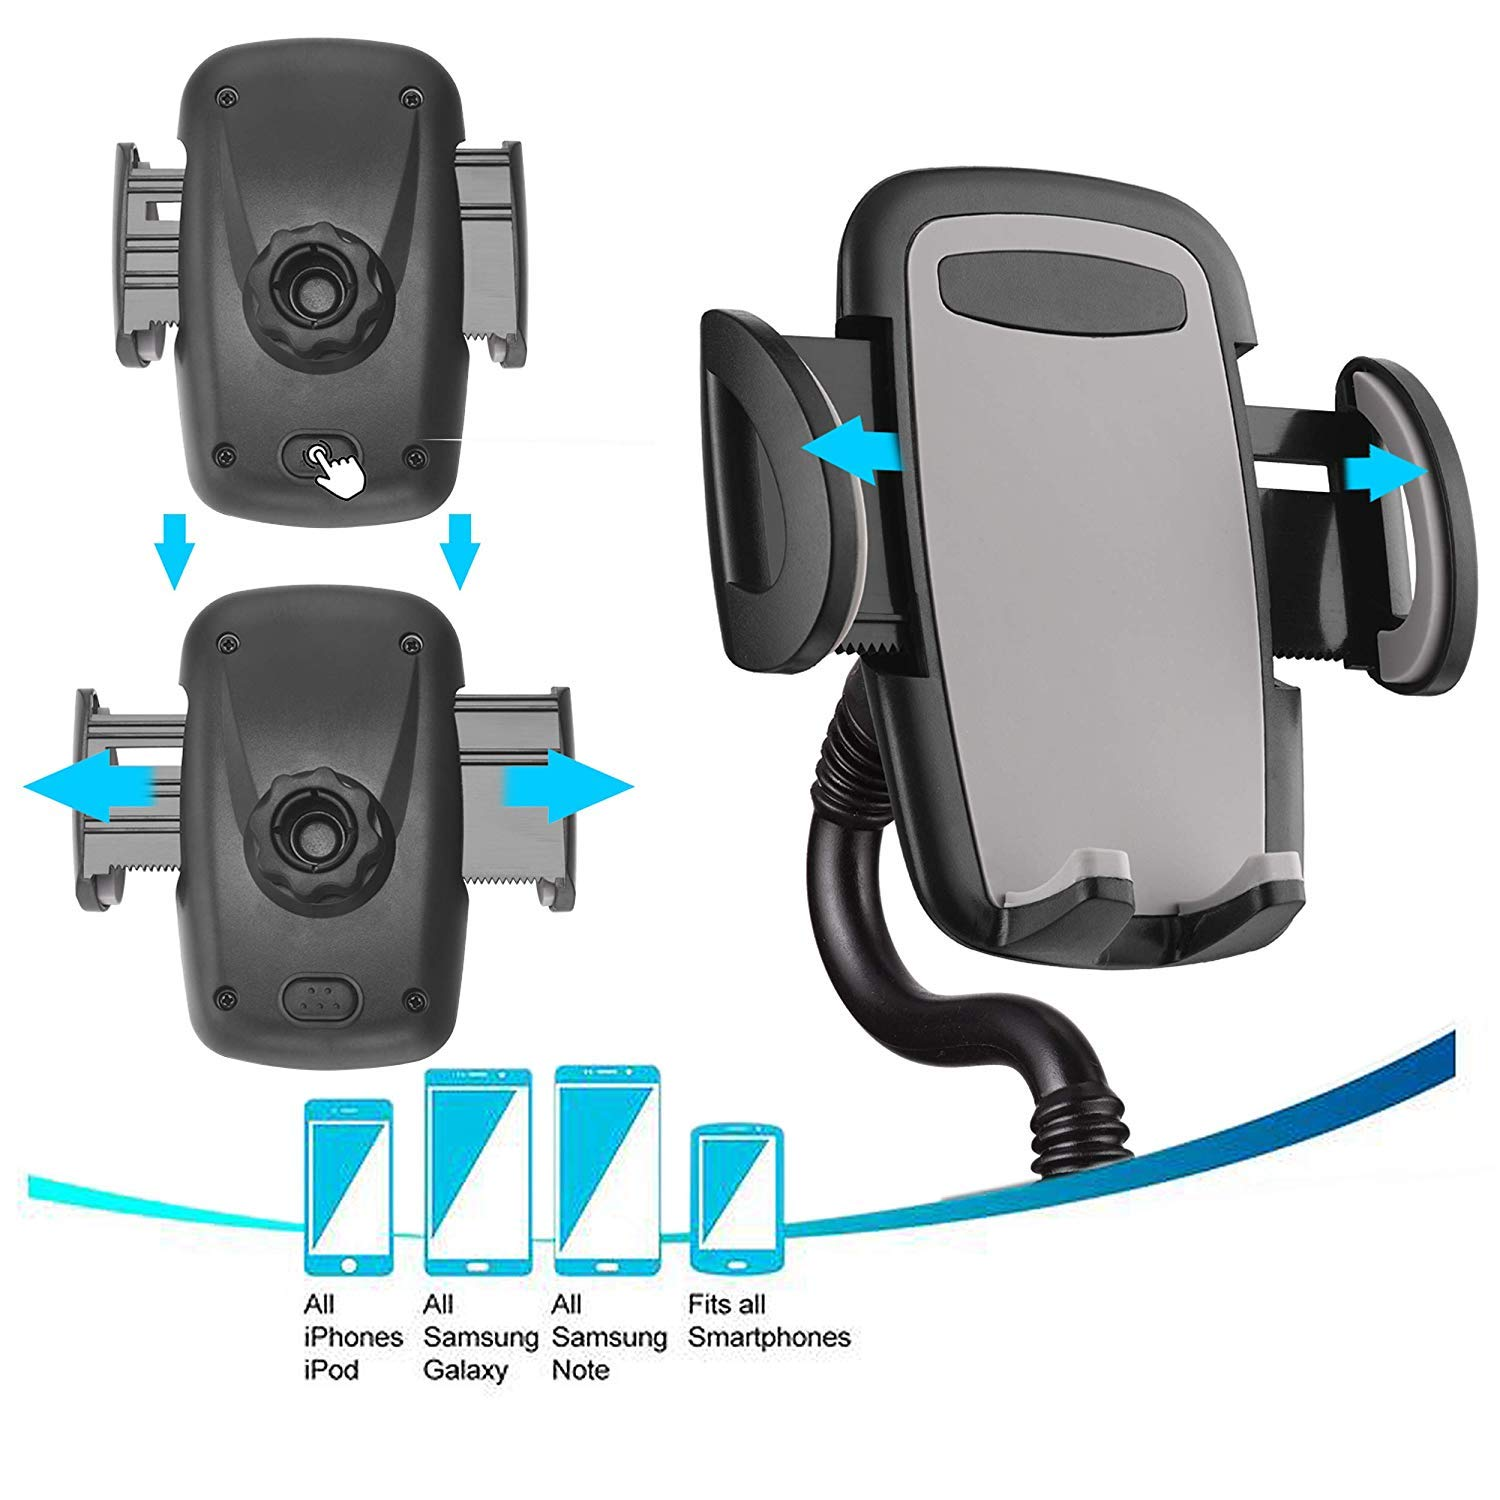 MQOUNY Cup Holder Phone Mount,Long Arm Cell Phone Cup Car Phone Holder /& Air Vent Car Phone Mount Compatible for iPhone XR//XS//XS Max//X//8//8 Plus Gray Samsung S10//S10e//S9+//8//8 and More